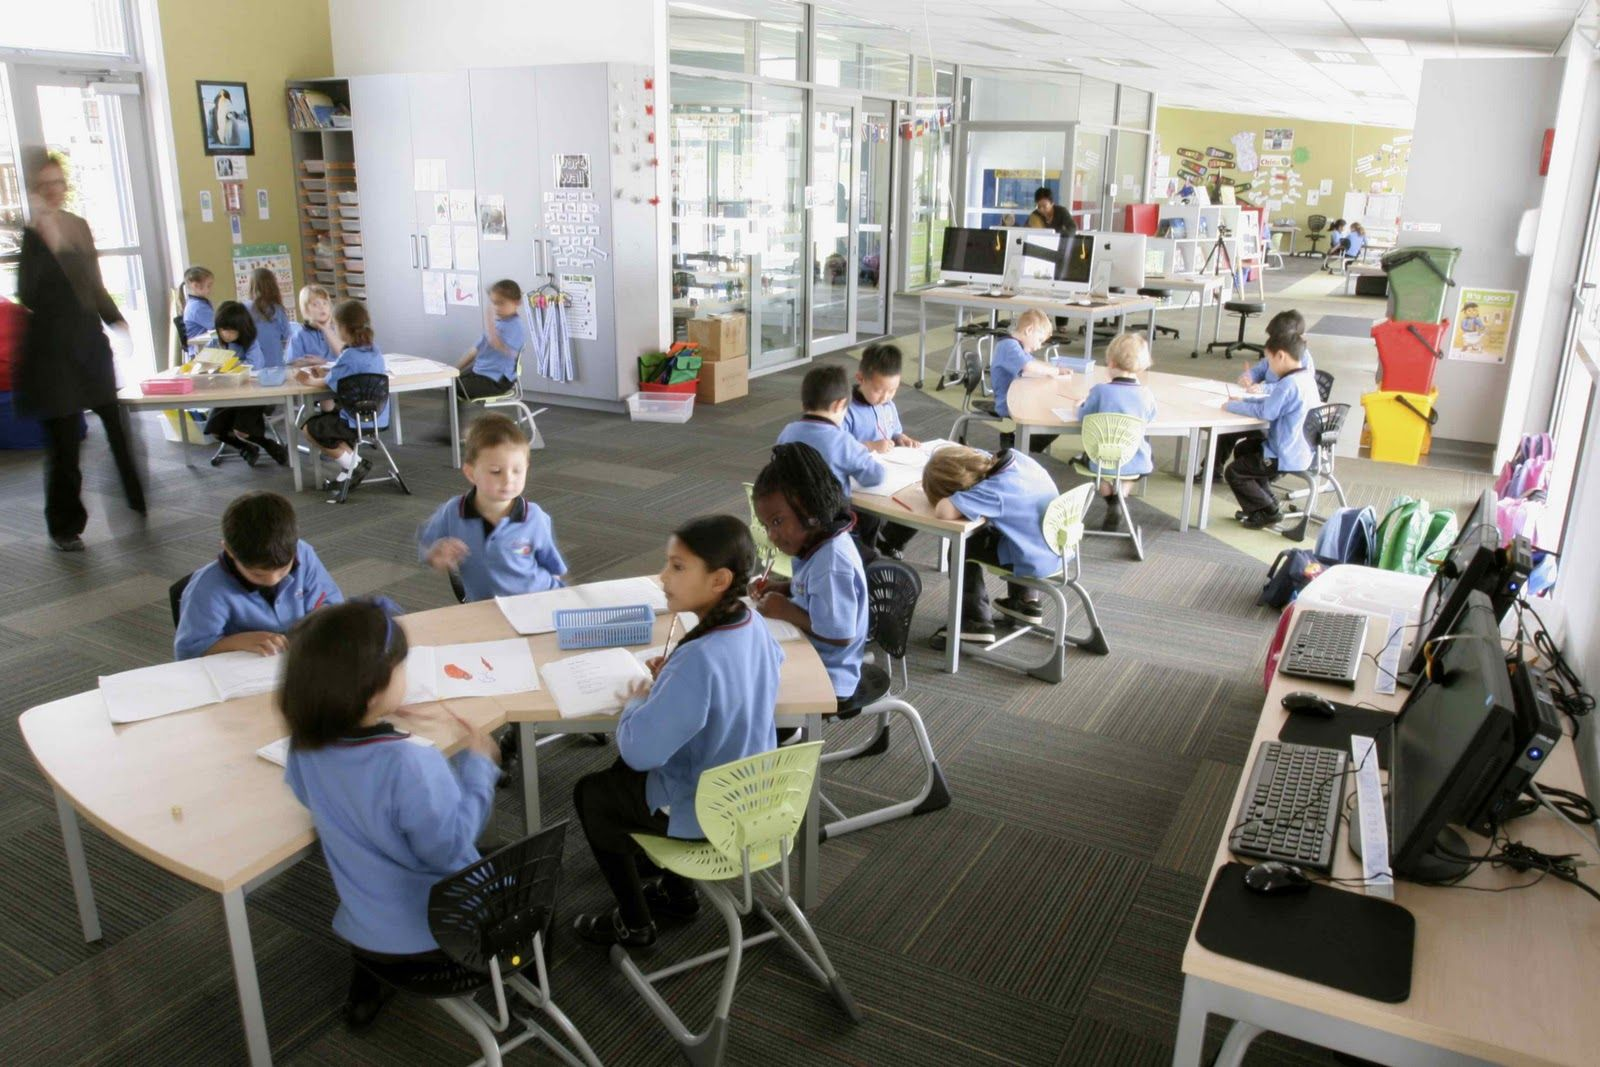 Modern Classroom Teacher : Open learning spaces collaborative teaching what might